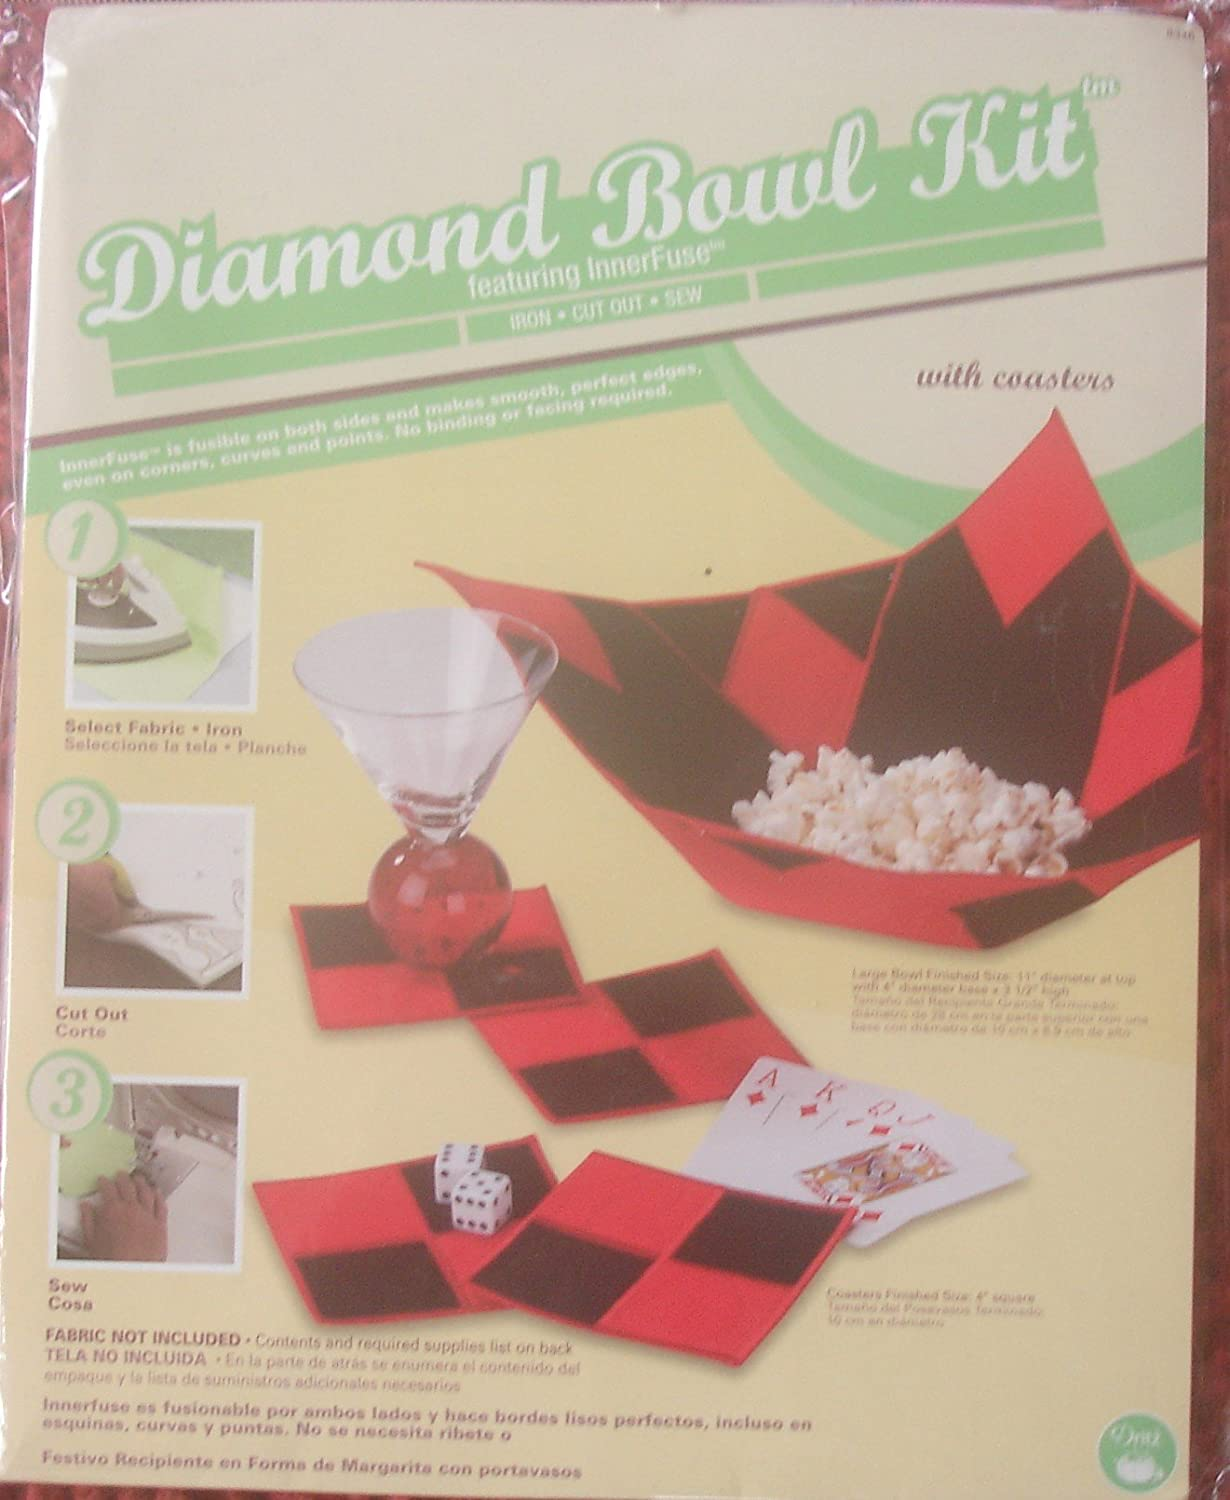 Amazon.com: Dritz Diamond Bowl Kit with Coasters (An Innerfuse Kit ...